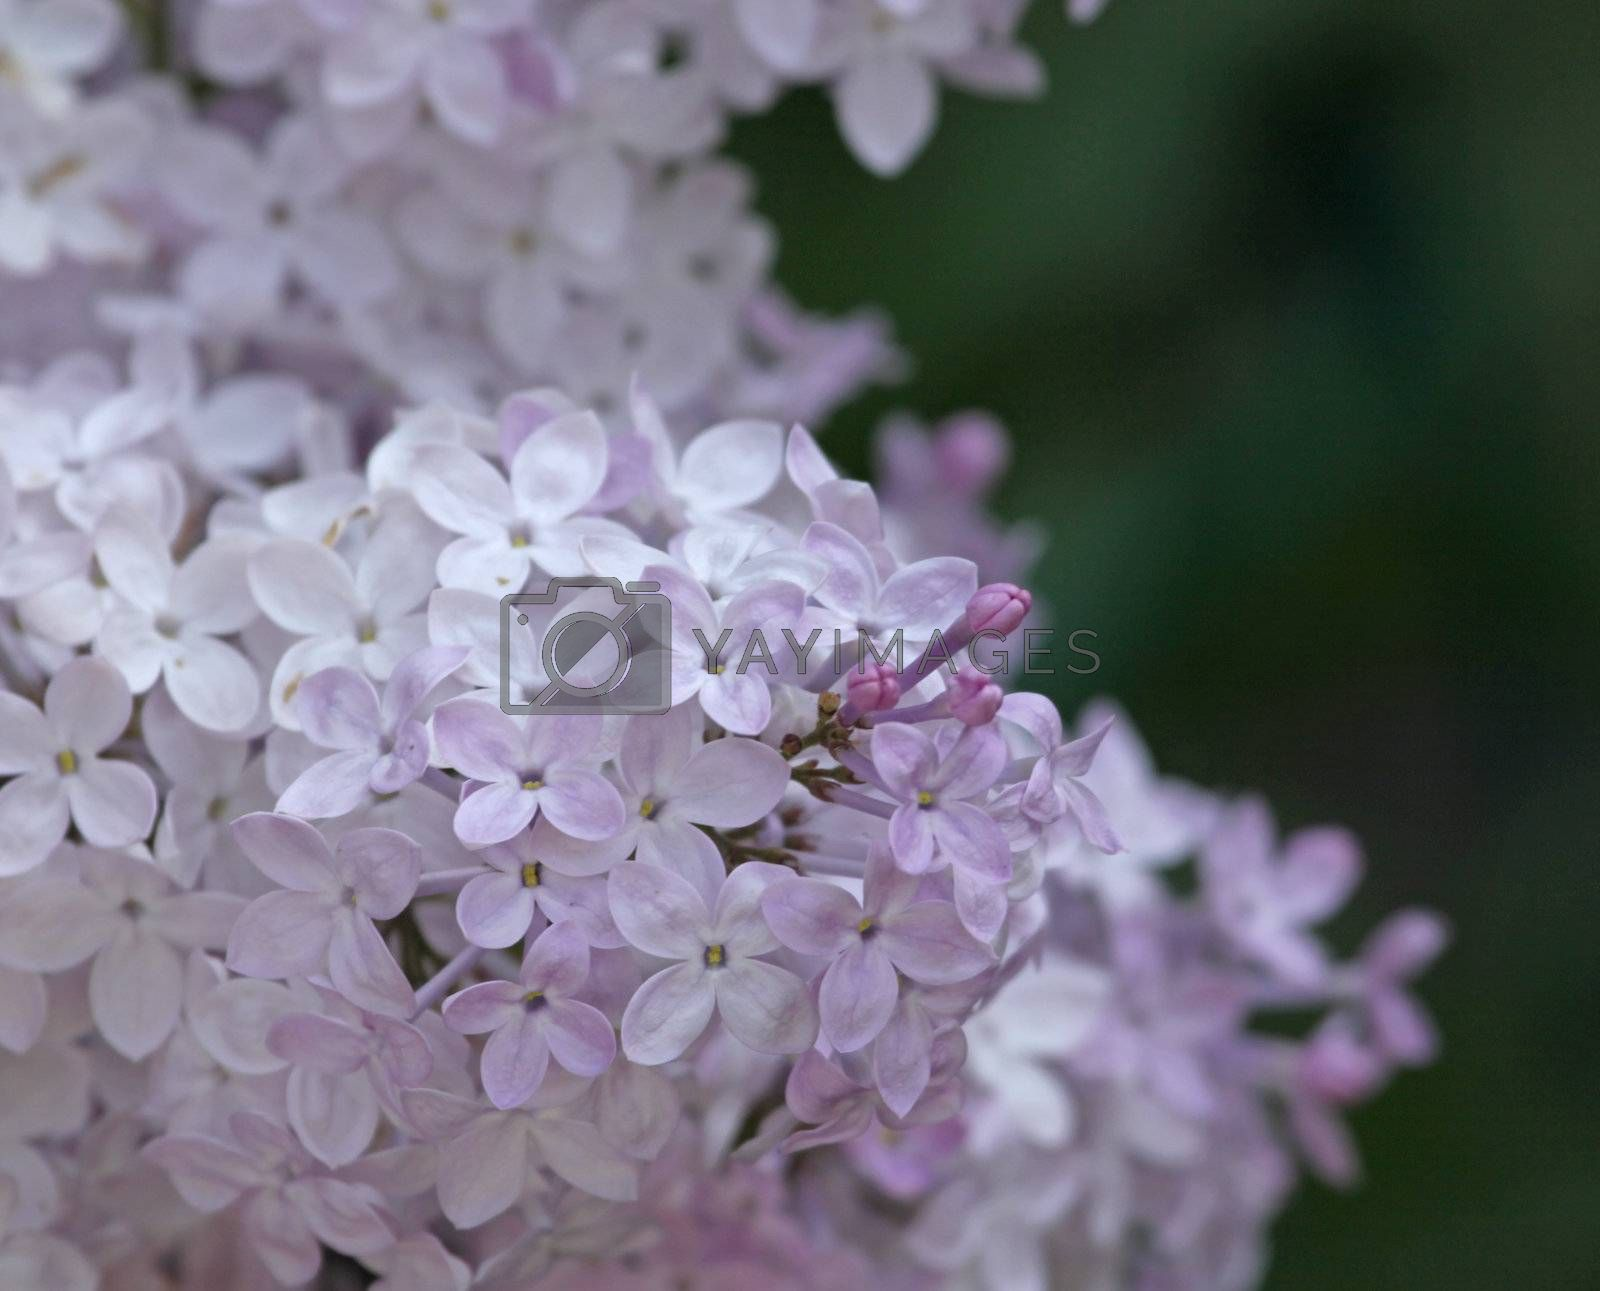 A close-up of light purple Lilac (Syringa) flowers blooming.